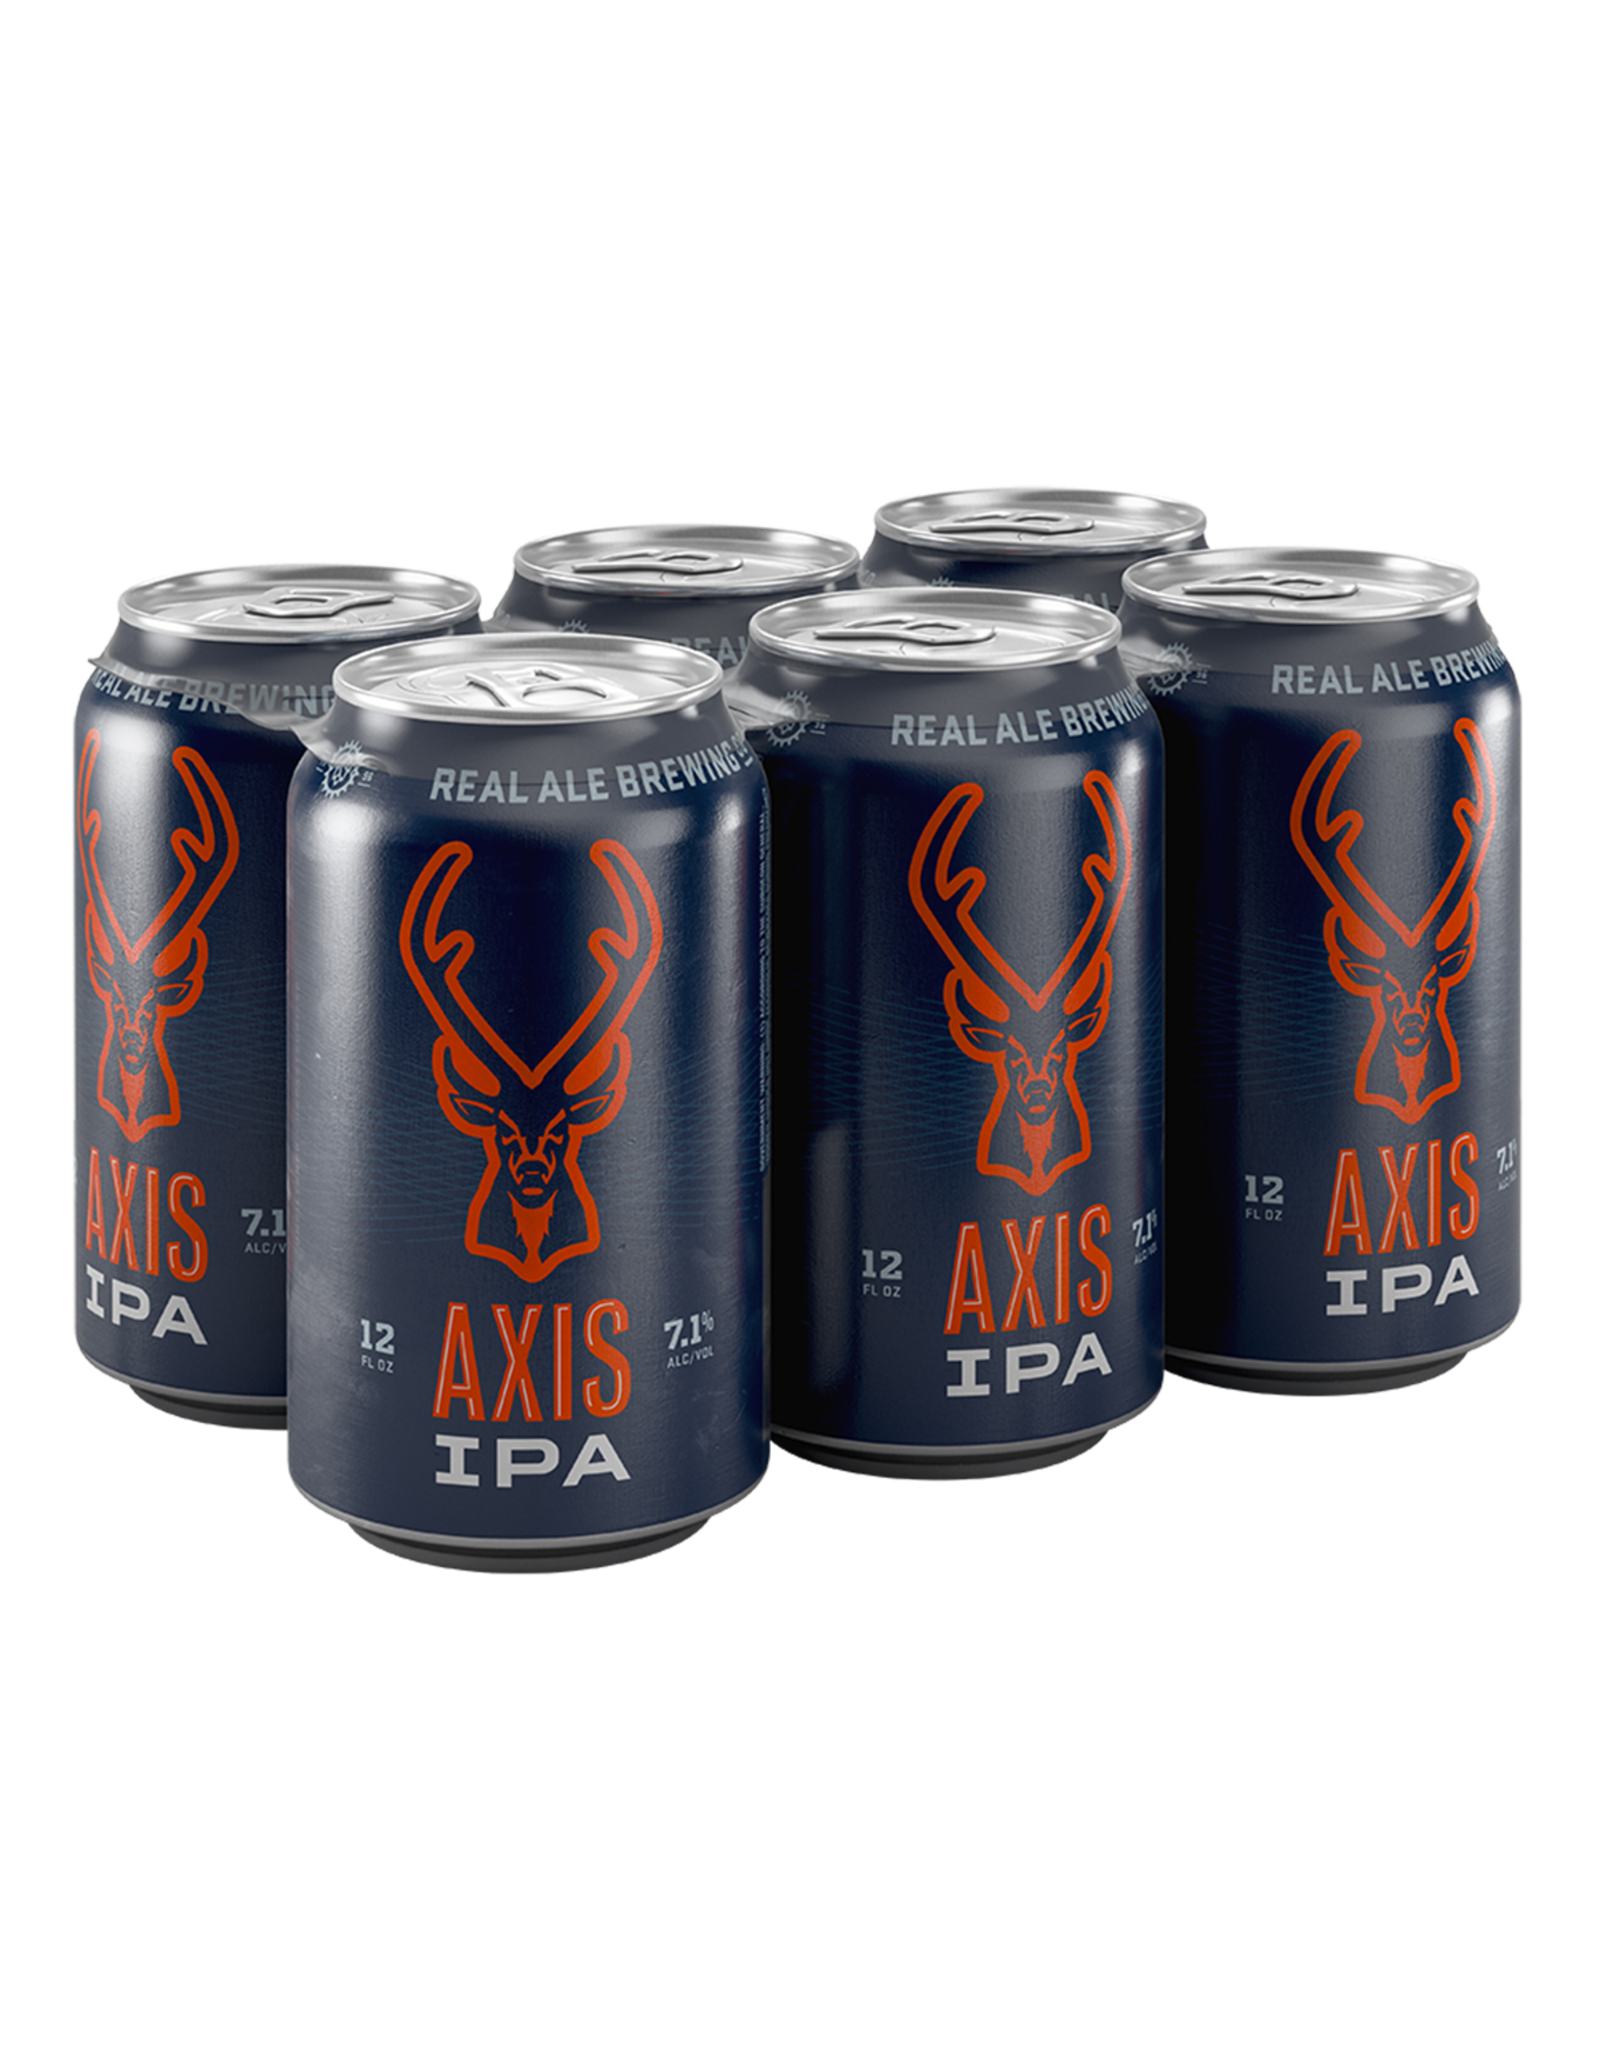 REAL ALE AXIS IPA 4-6-12 CAN